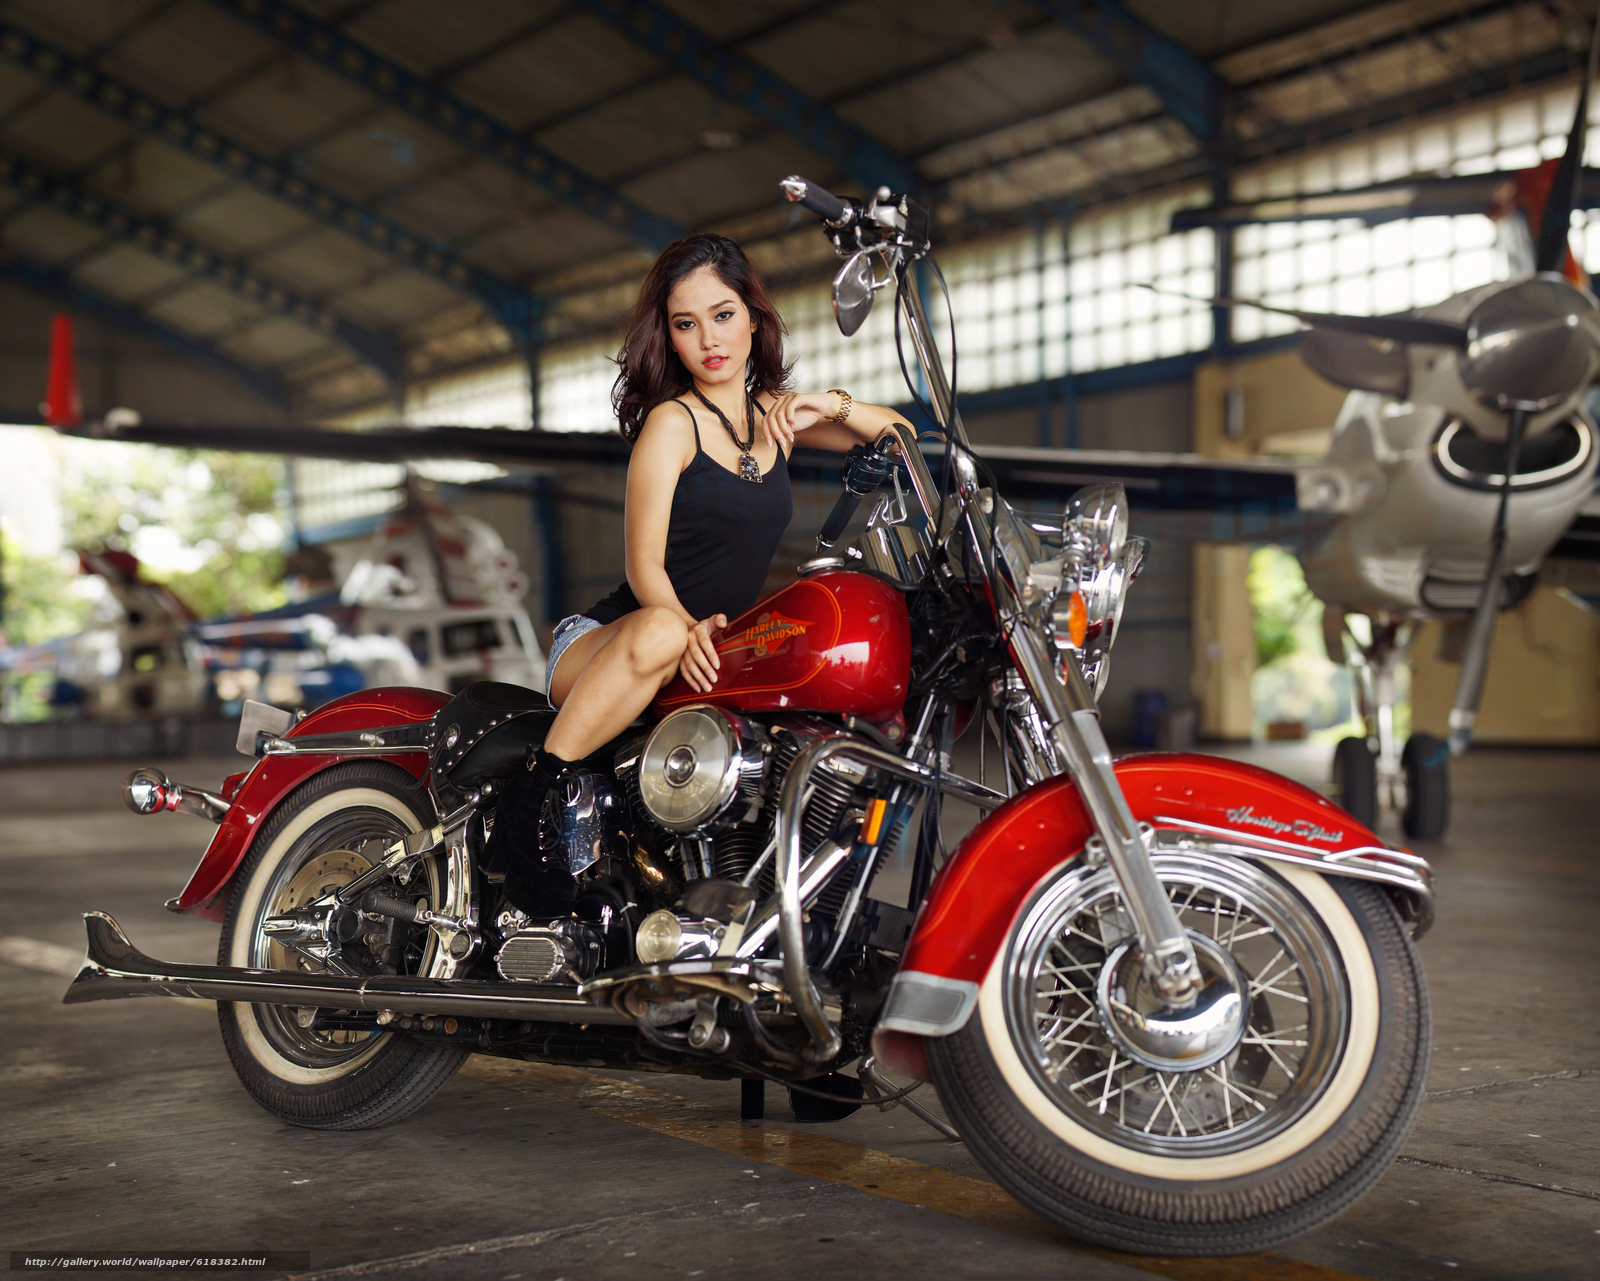 Download wallpaper girl asian plane motorcycle free desktop download wallpaper girl asian plane motorcycle free desktop wallpaper in the resolution 7936x6354 picture 618382 sciox Image collections